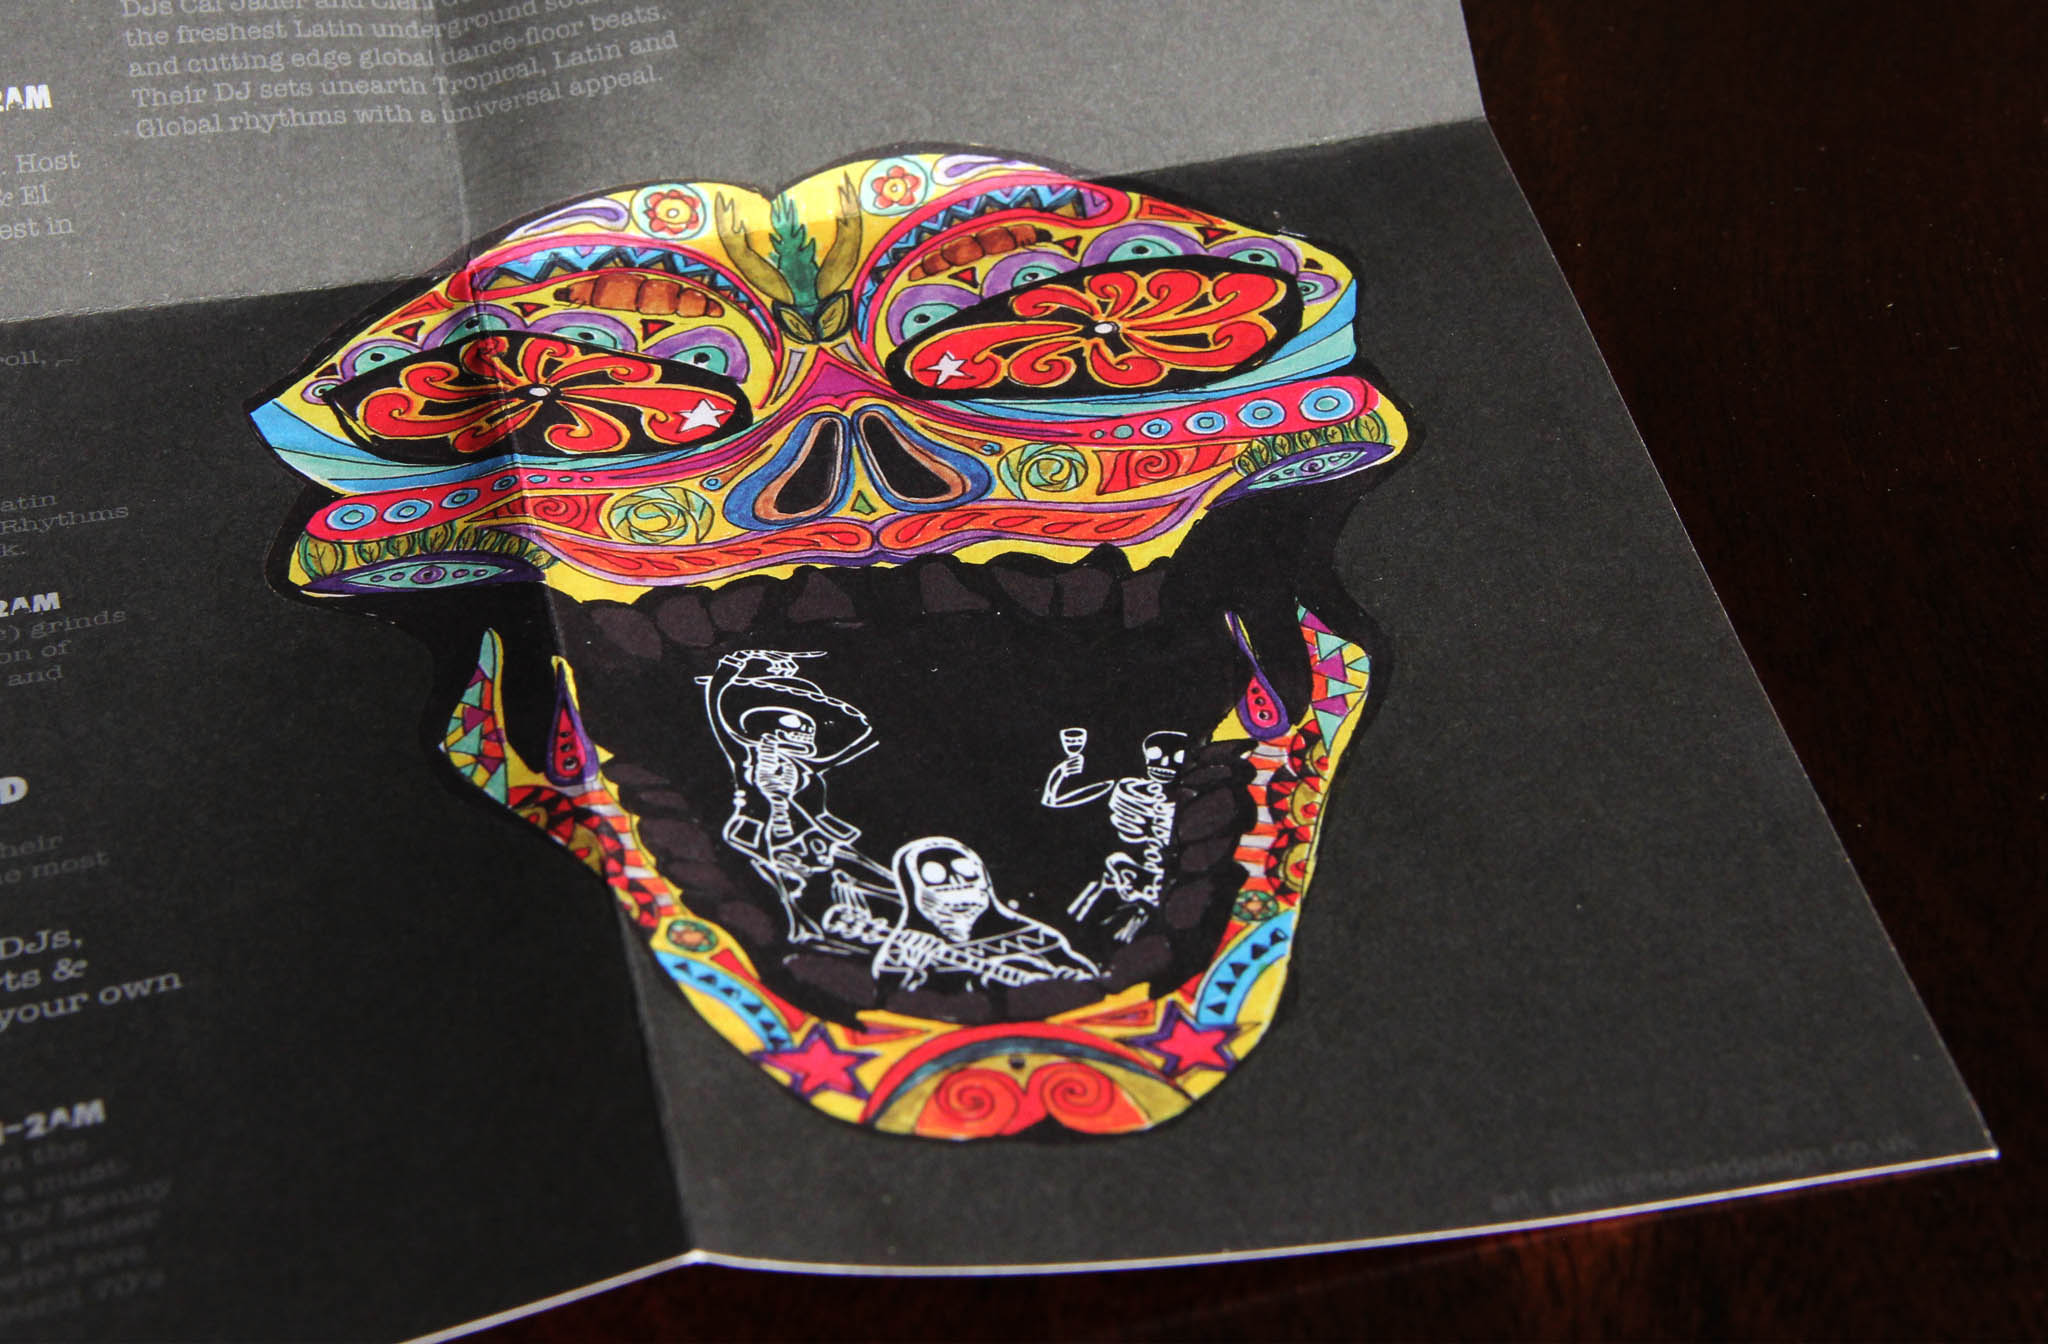 Close-up of a colourful, hand drawn Mexican mask on a black menu, for Chamucos Bar, illustrated by SAINT Design.